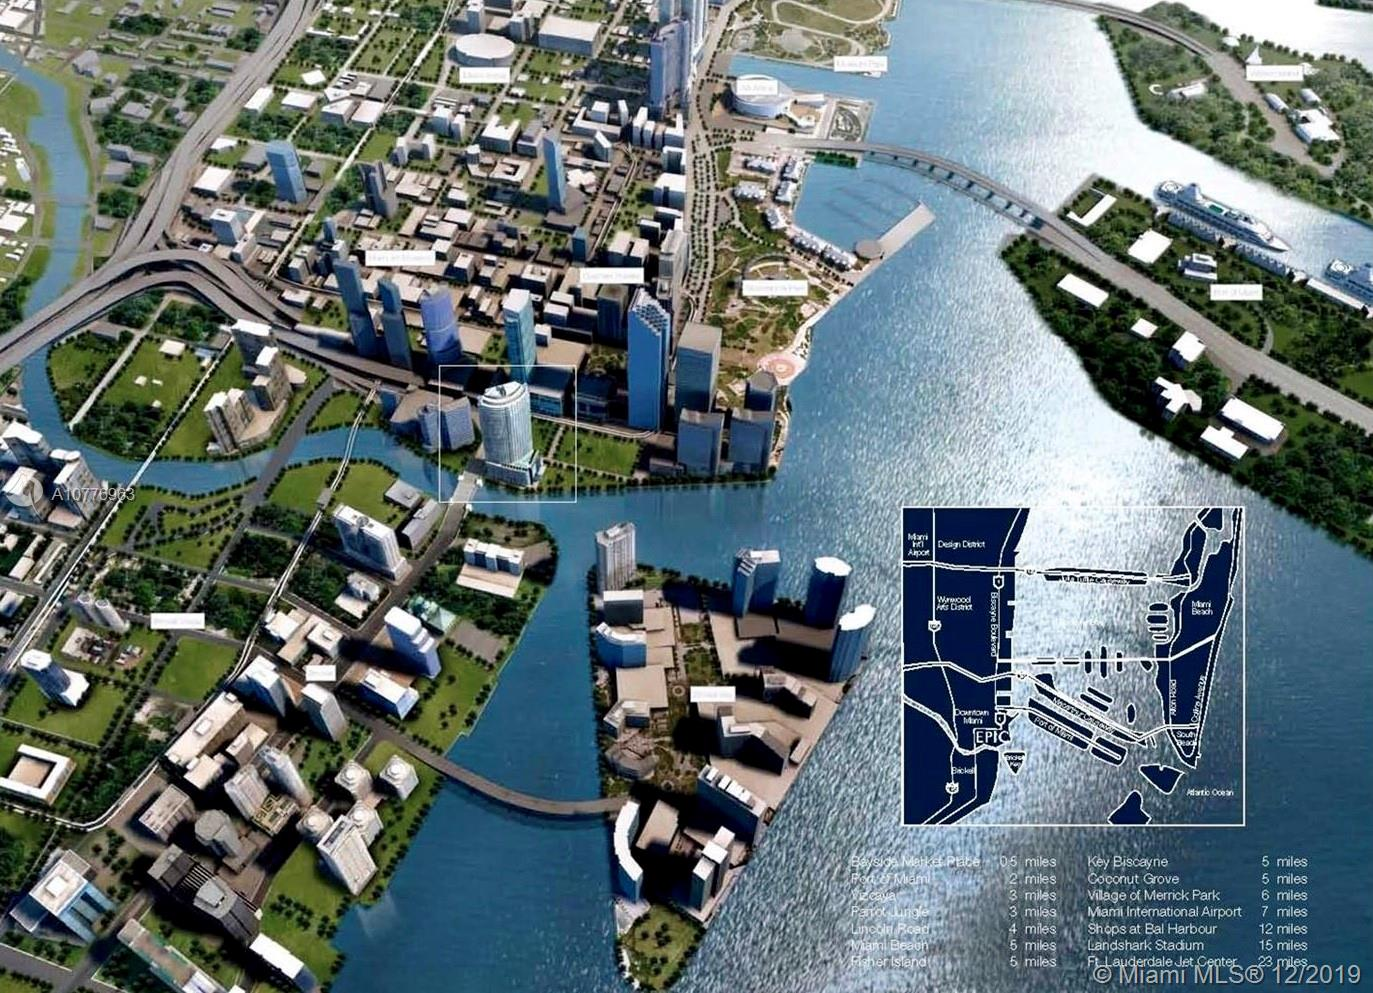 EPIC WATERFRONT RESIDENCES 4702, 4704 & 4712. A unique one of a kind opportunity to build your dream condo with these 3 combined units! 5,400+/- SF of interior space plus 938 SF of outside terraces, designer ready! Listing price reflects finished to buyers specifications with 6 bedrooms and 7 bathrooms. This unit has unobstructed bay and city views at the mouth of the Miami River captivating the Miami Skyline and water views of Miami Beach, Fisher Island and Biscayne Bay. Seller is willing to finance or to accept property in exchange in major cities in Europe, South America, USA or Mexico. 6 available parking spaces.